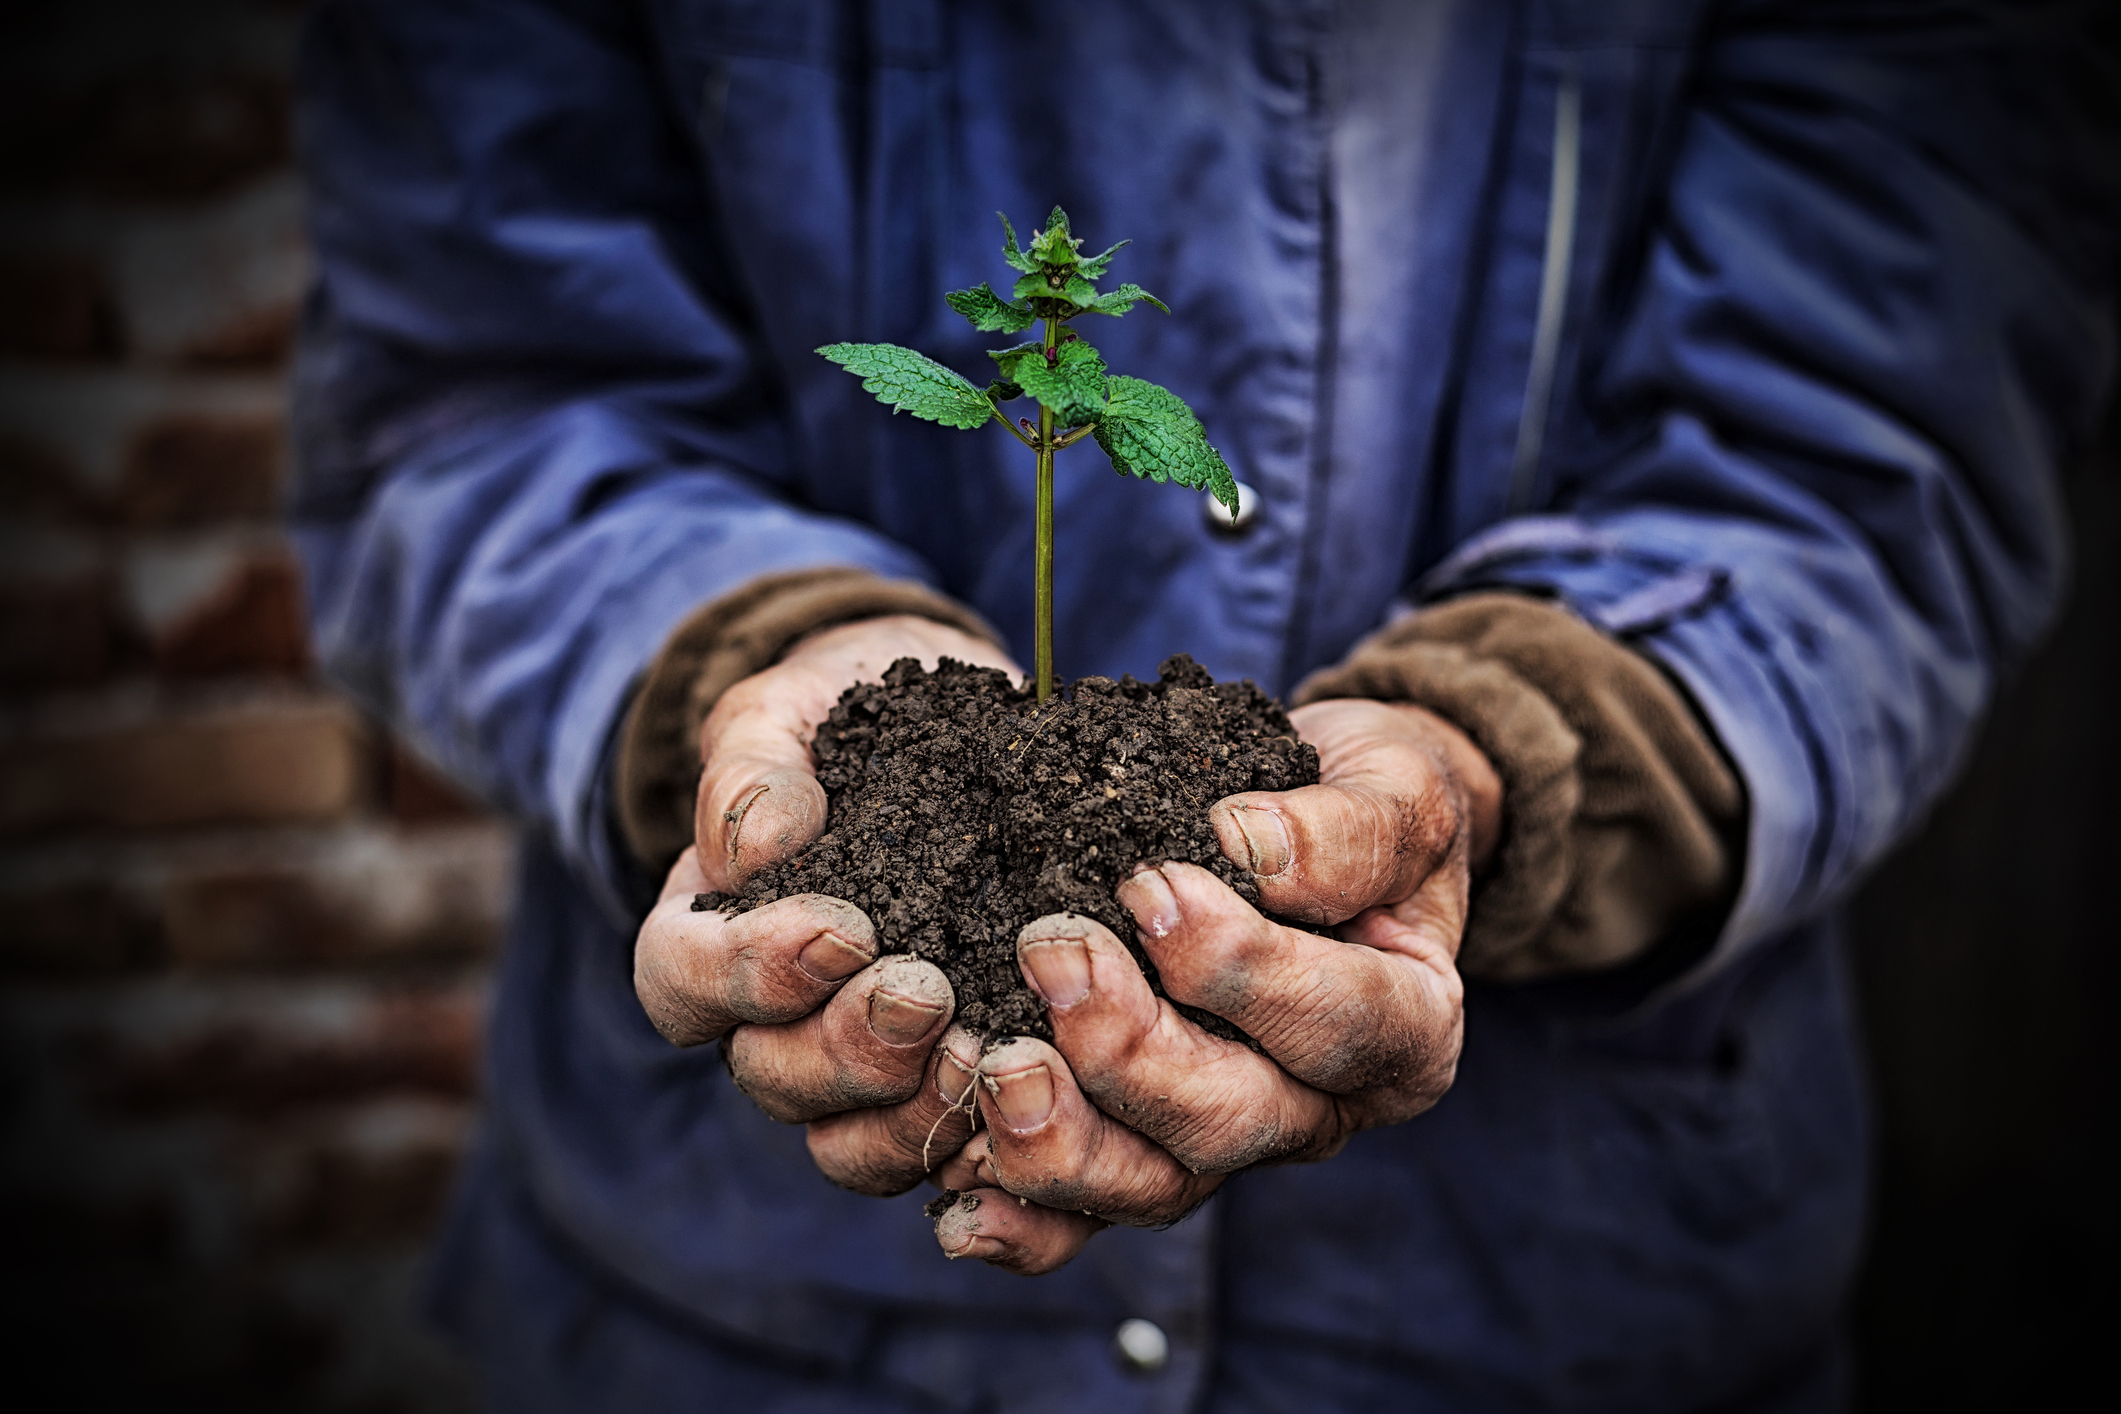 AgTech to avoid loss & boost yield